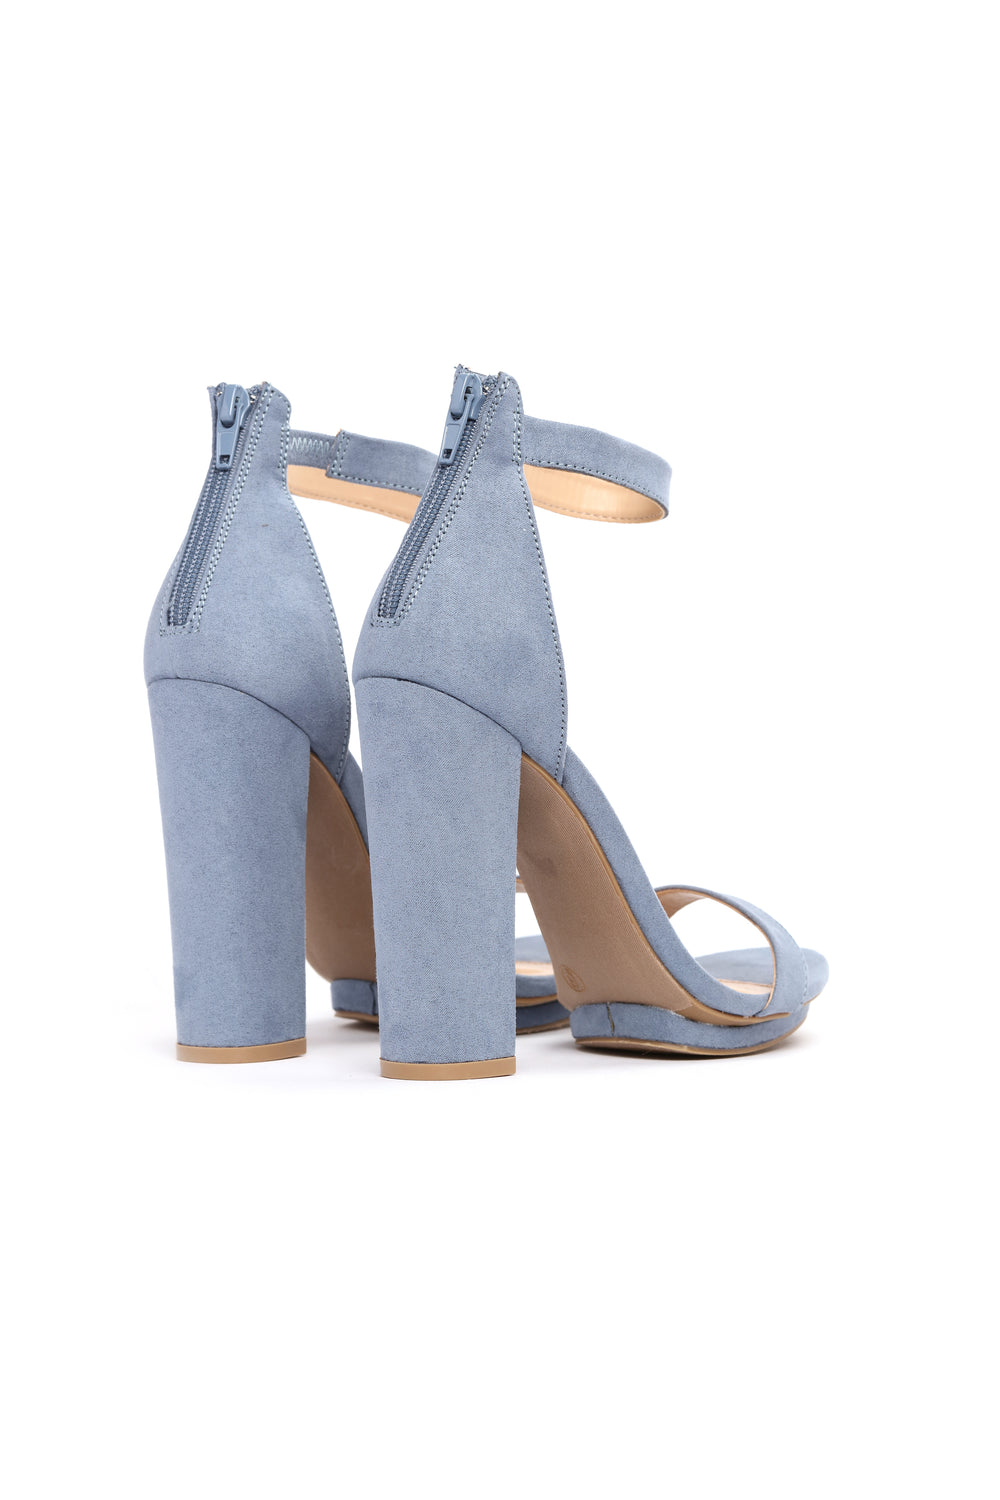 Simply Chic Heel - Dusty Blue